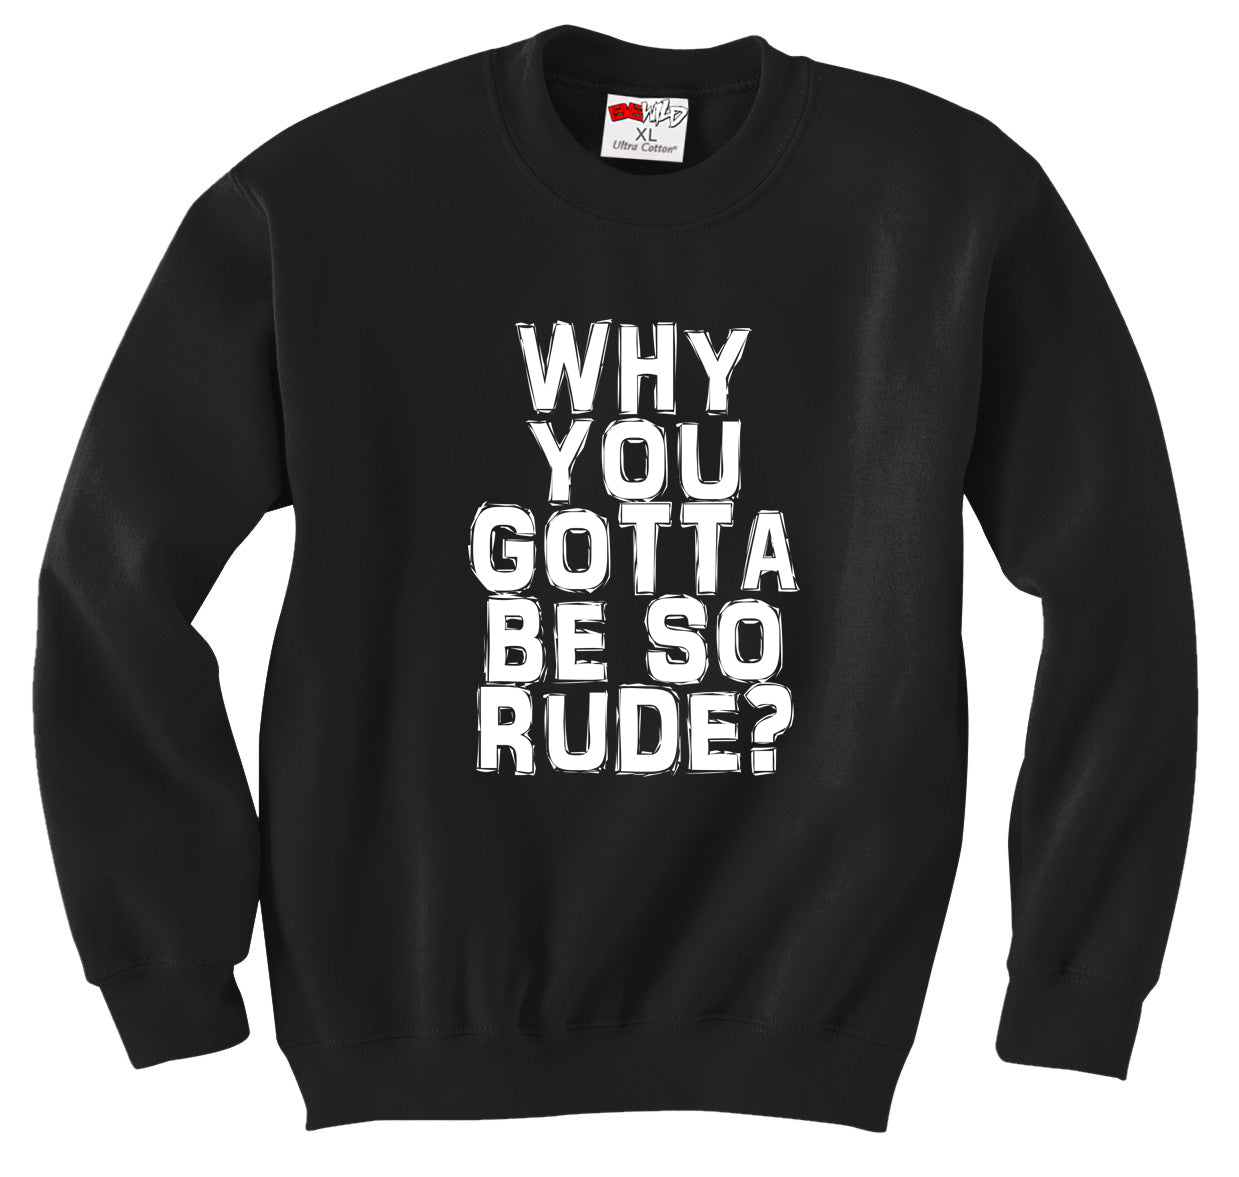 Why You Gotta Be So Rude? Crewneck Sweatshirt